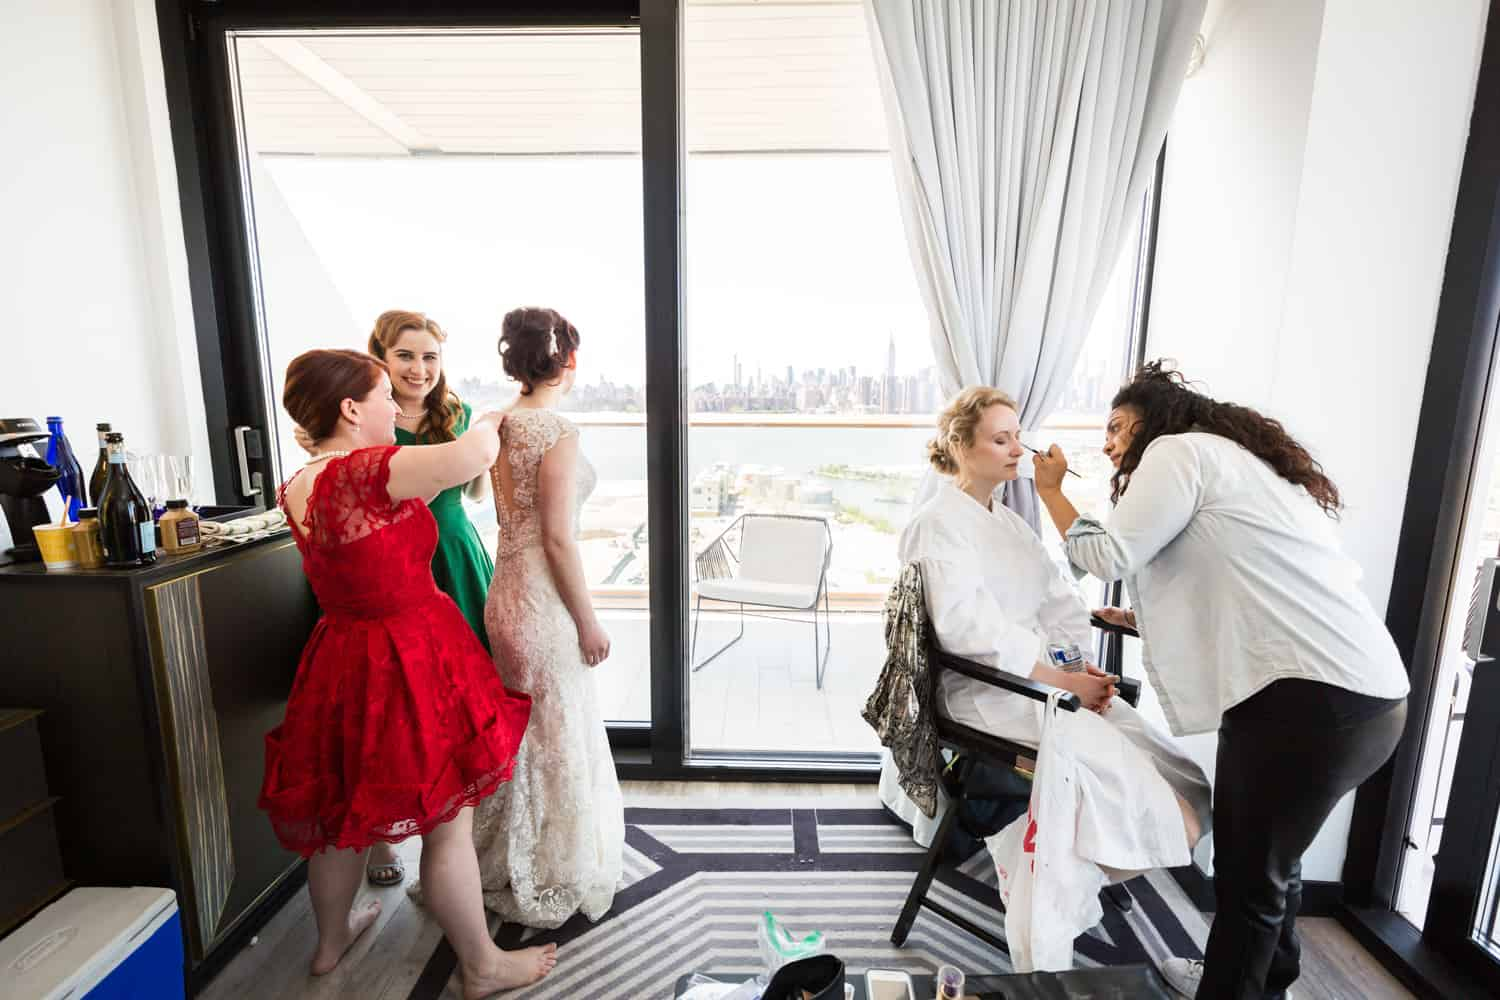 Bride and bridesmaids getting ready in William Vale hotel room with terrace